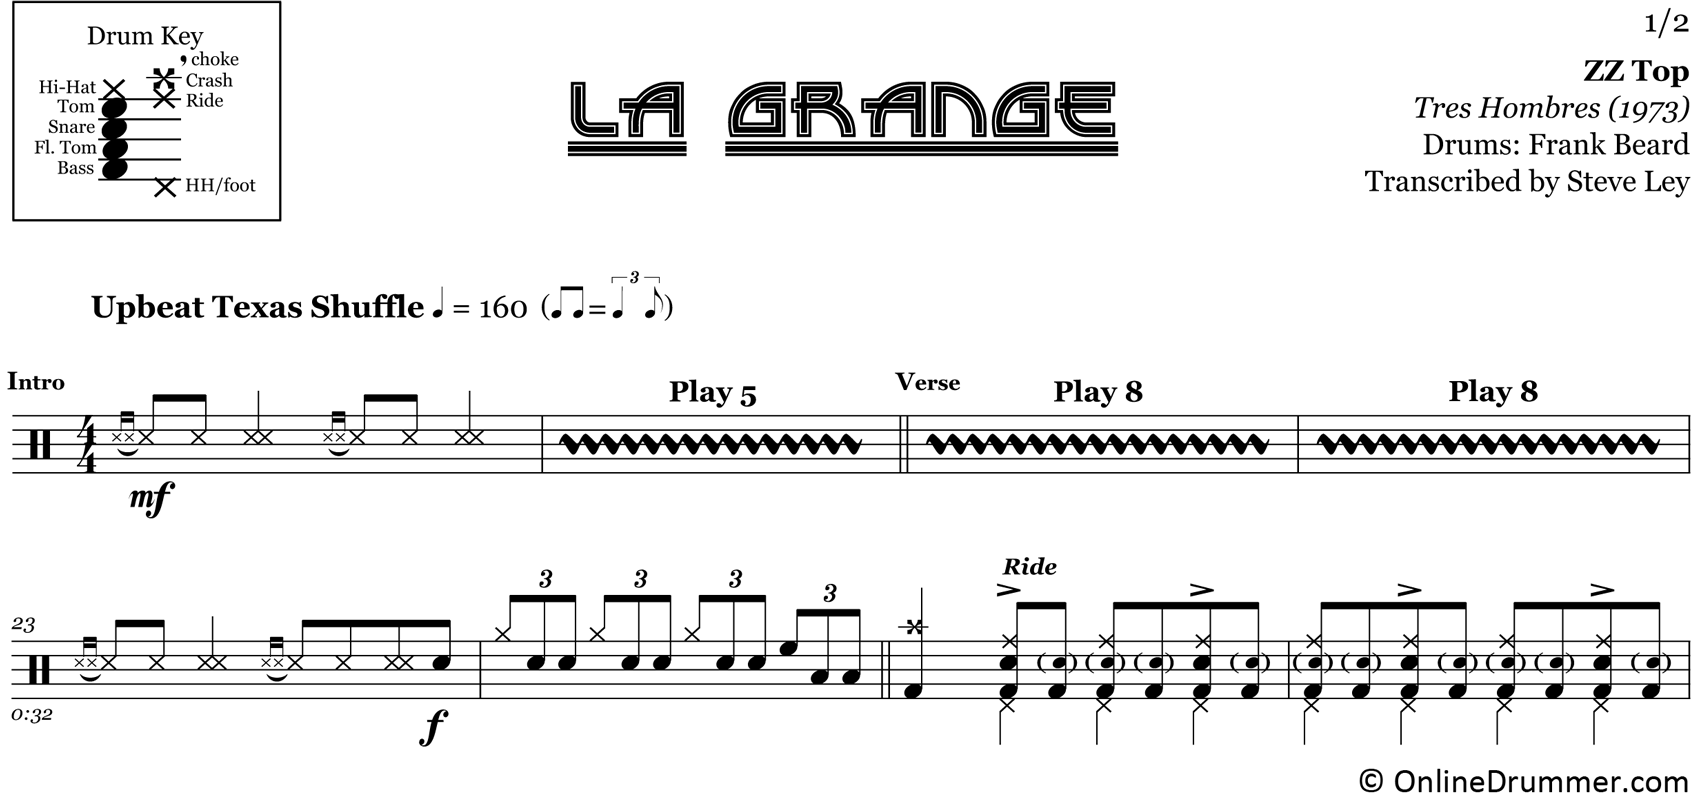 La Grange - ZZ Top - Drum Sheet Music